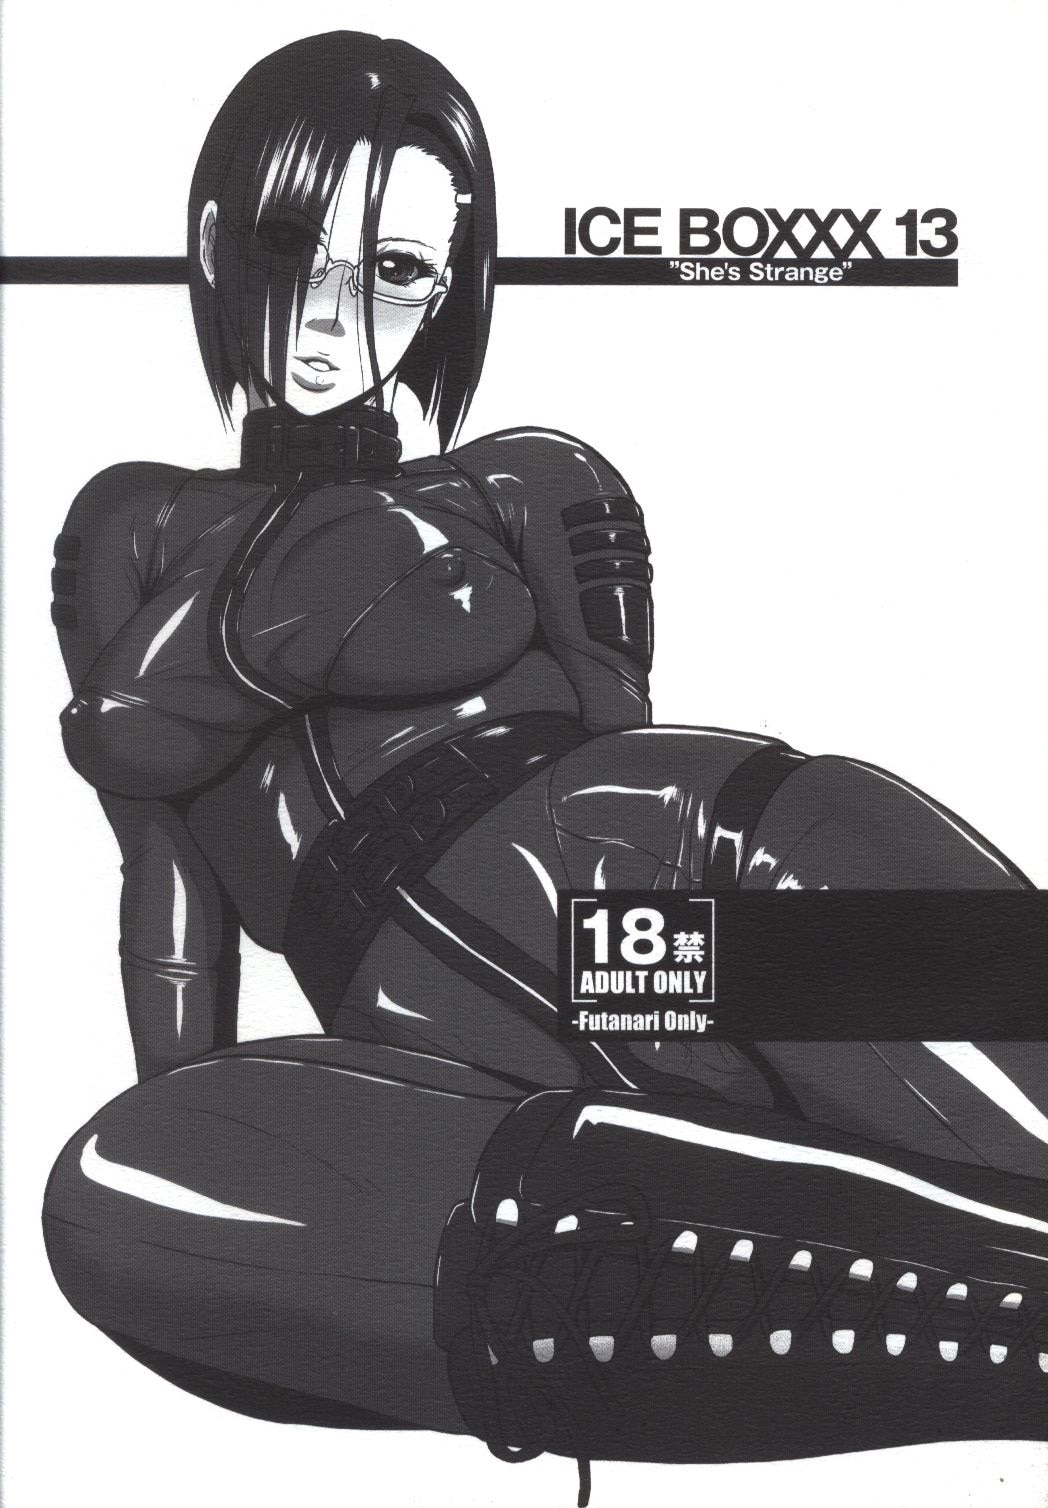 [Hentai] Doujinshi - Yamato 2199 (「宇宙戦艦ヤマト2199」 ICE BOXXX13) / serious graphics